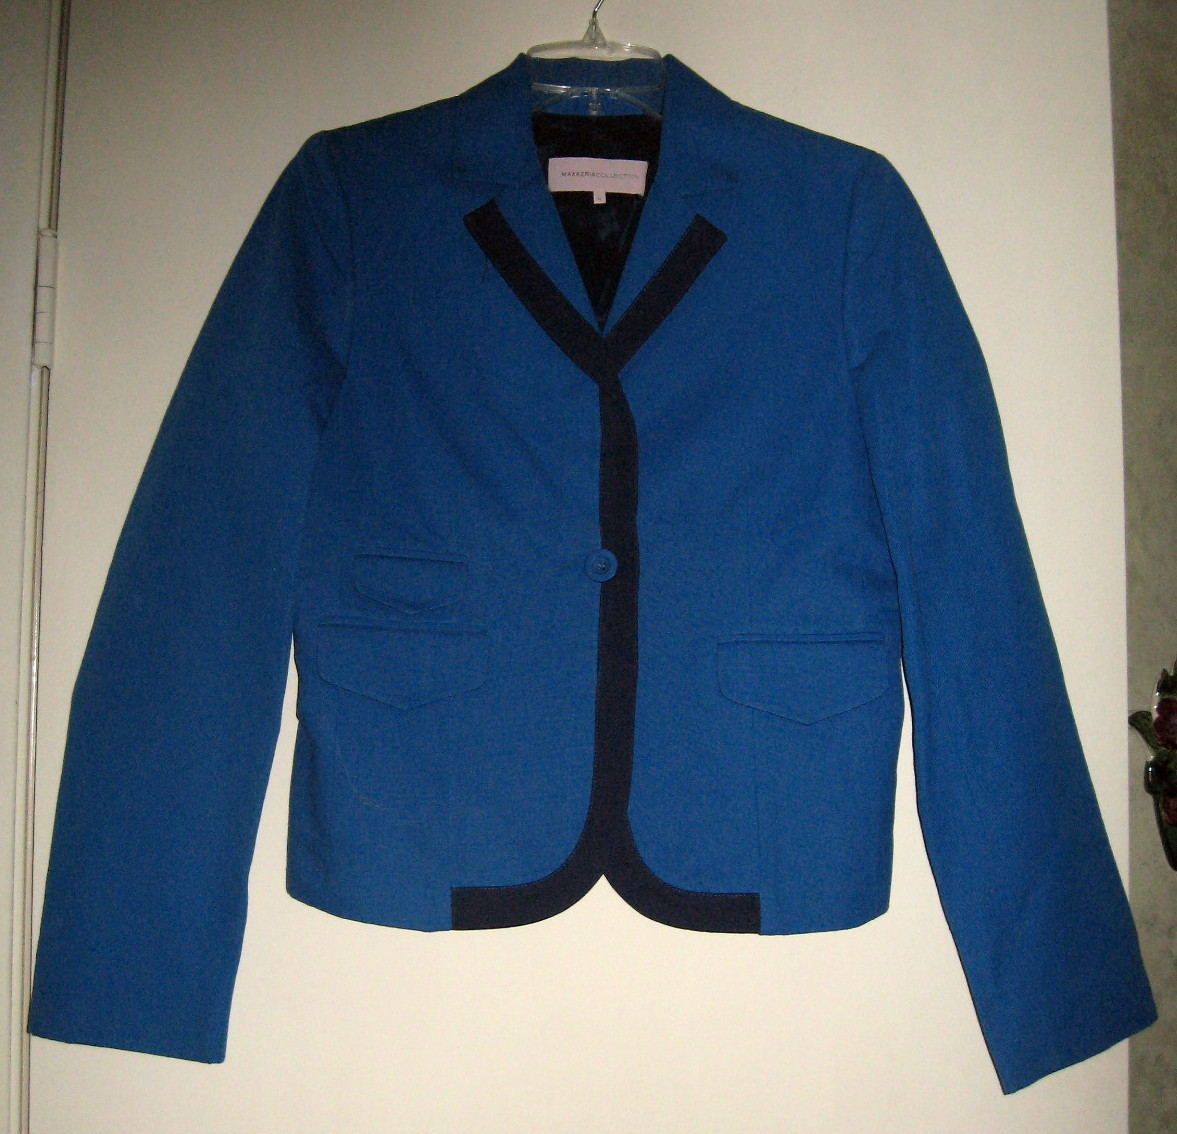 LADIES DESIGNER BLAZER, MAXAZRIA COLLECTION SIZE SMALL